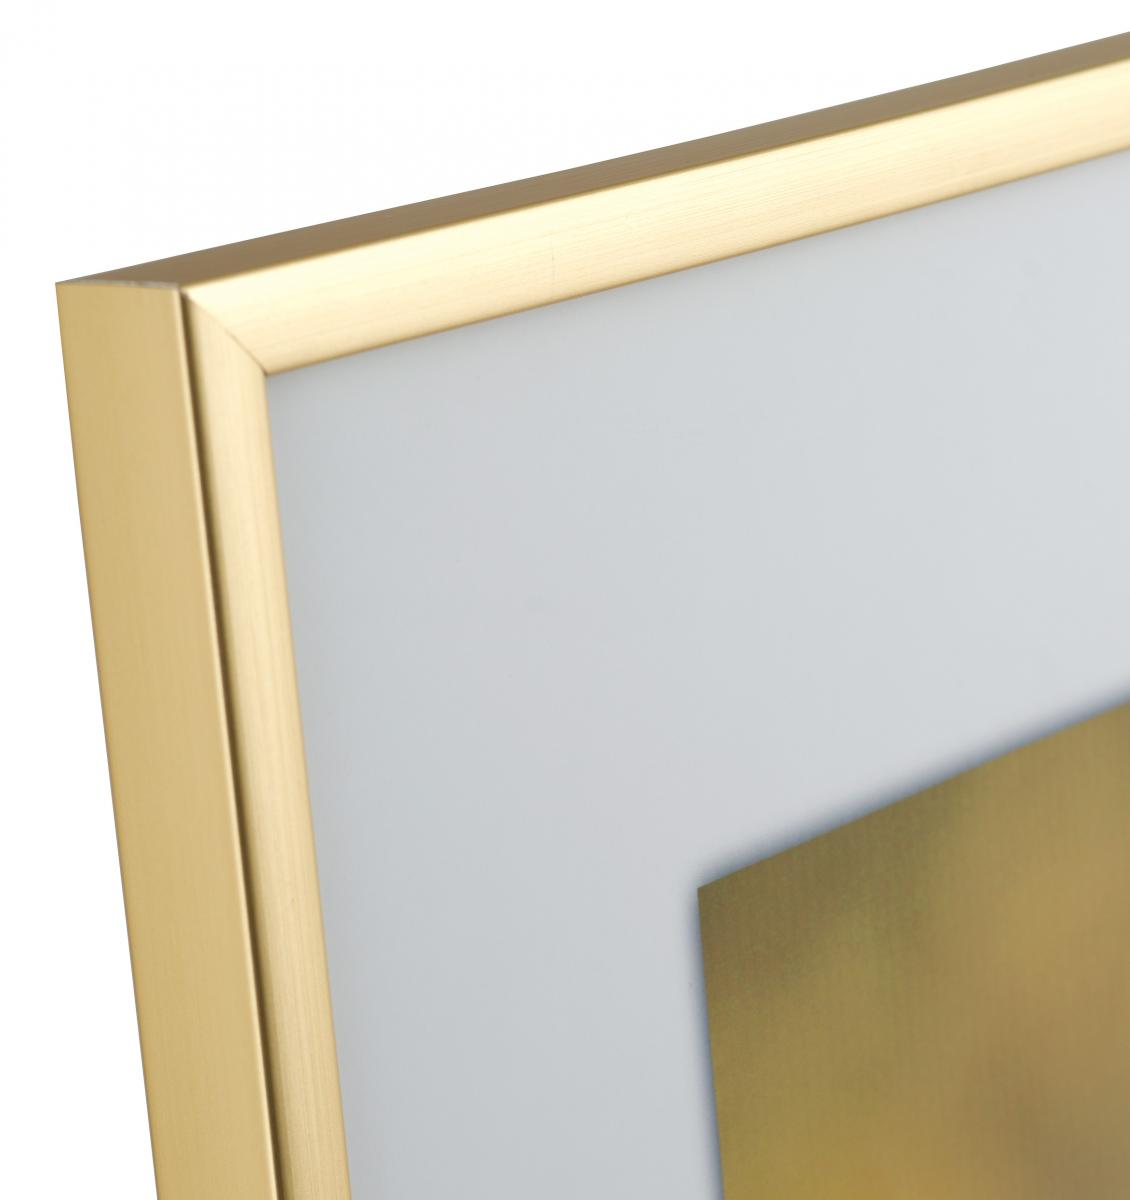 New Lifestyle ramme Guld 50x70 cm